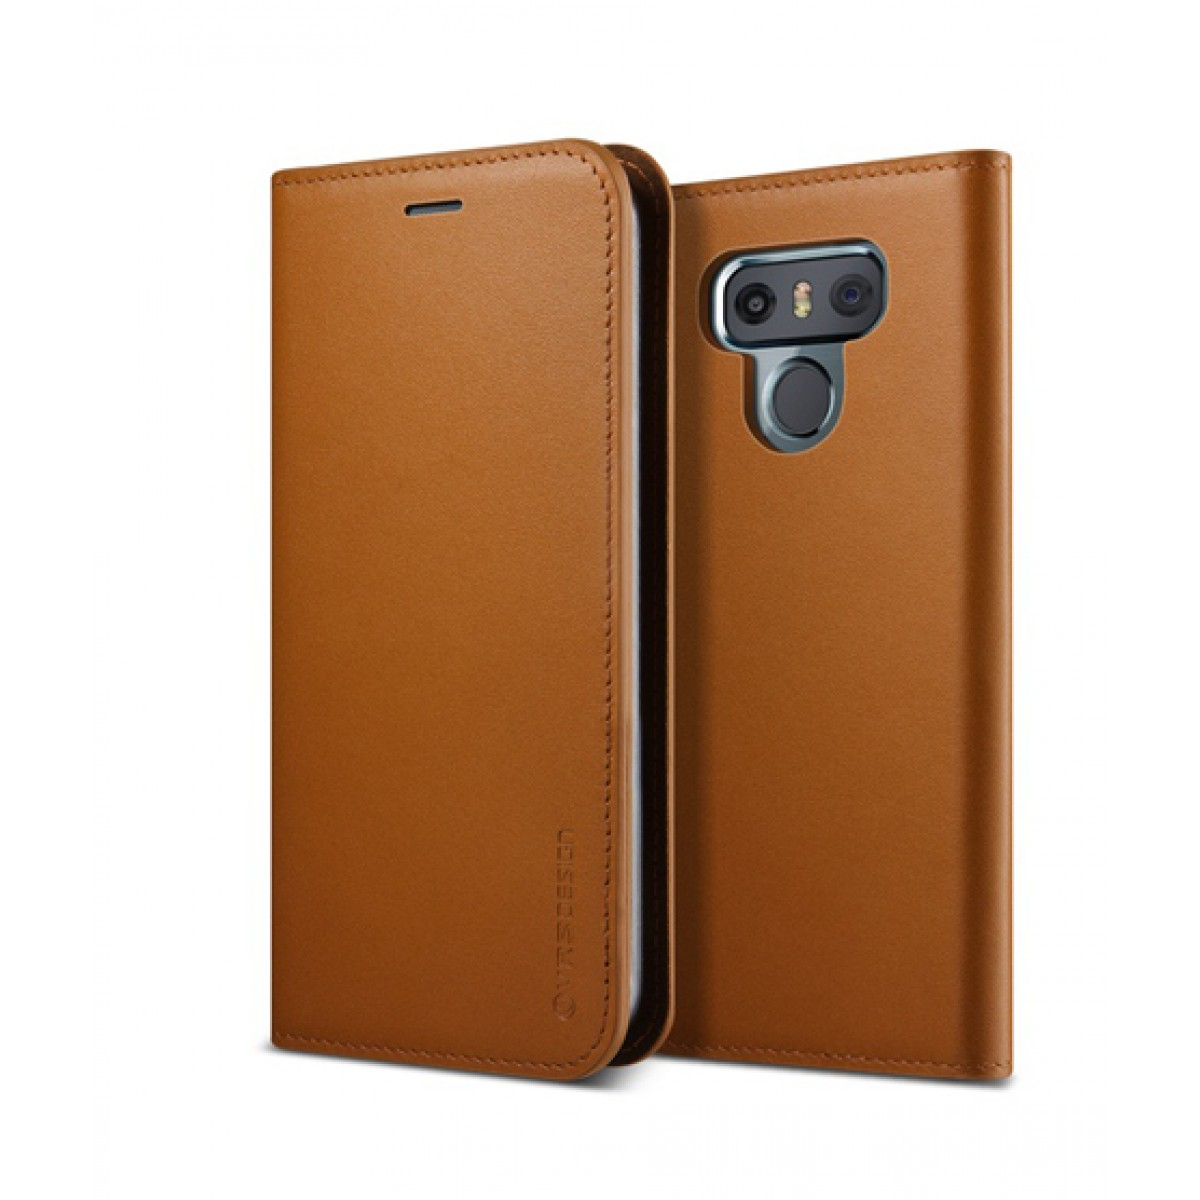 best value 14886 35a4e VRS Design Genuine Leather Diary Brown Case For LG G6